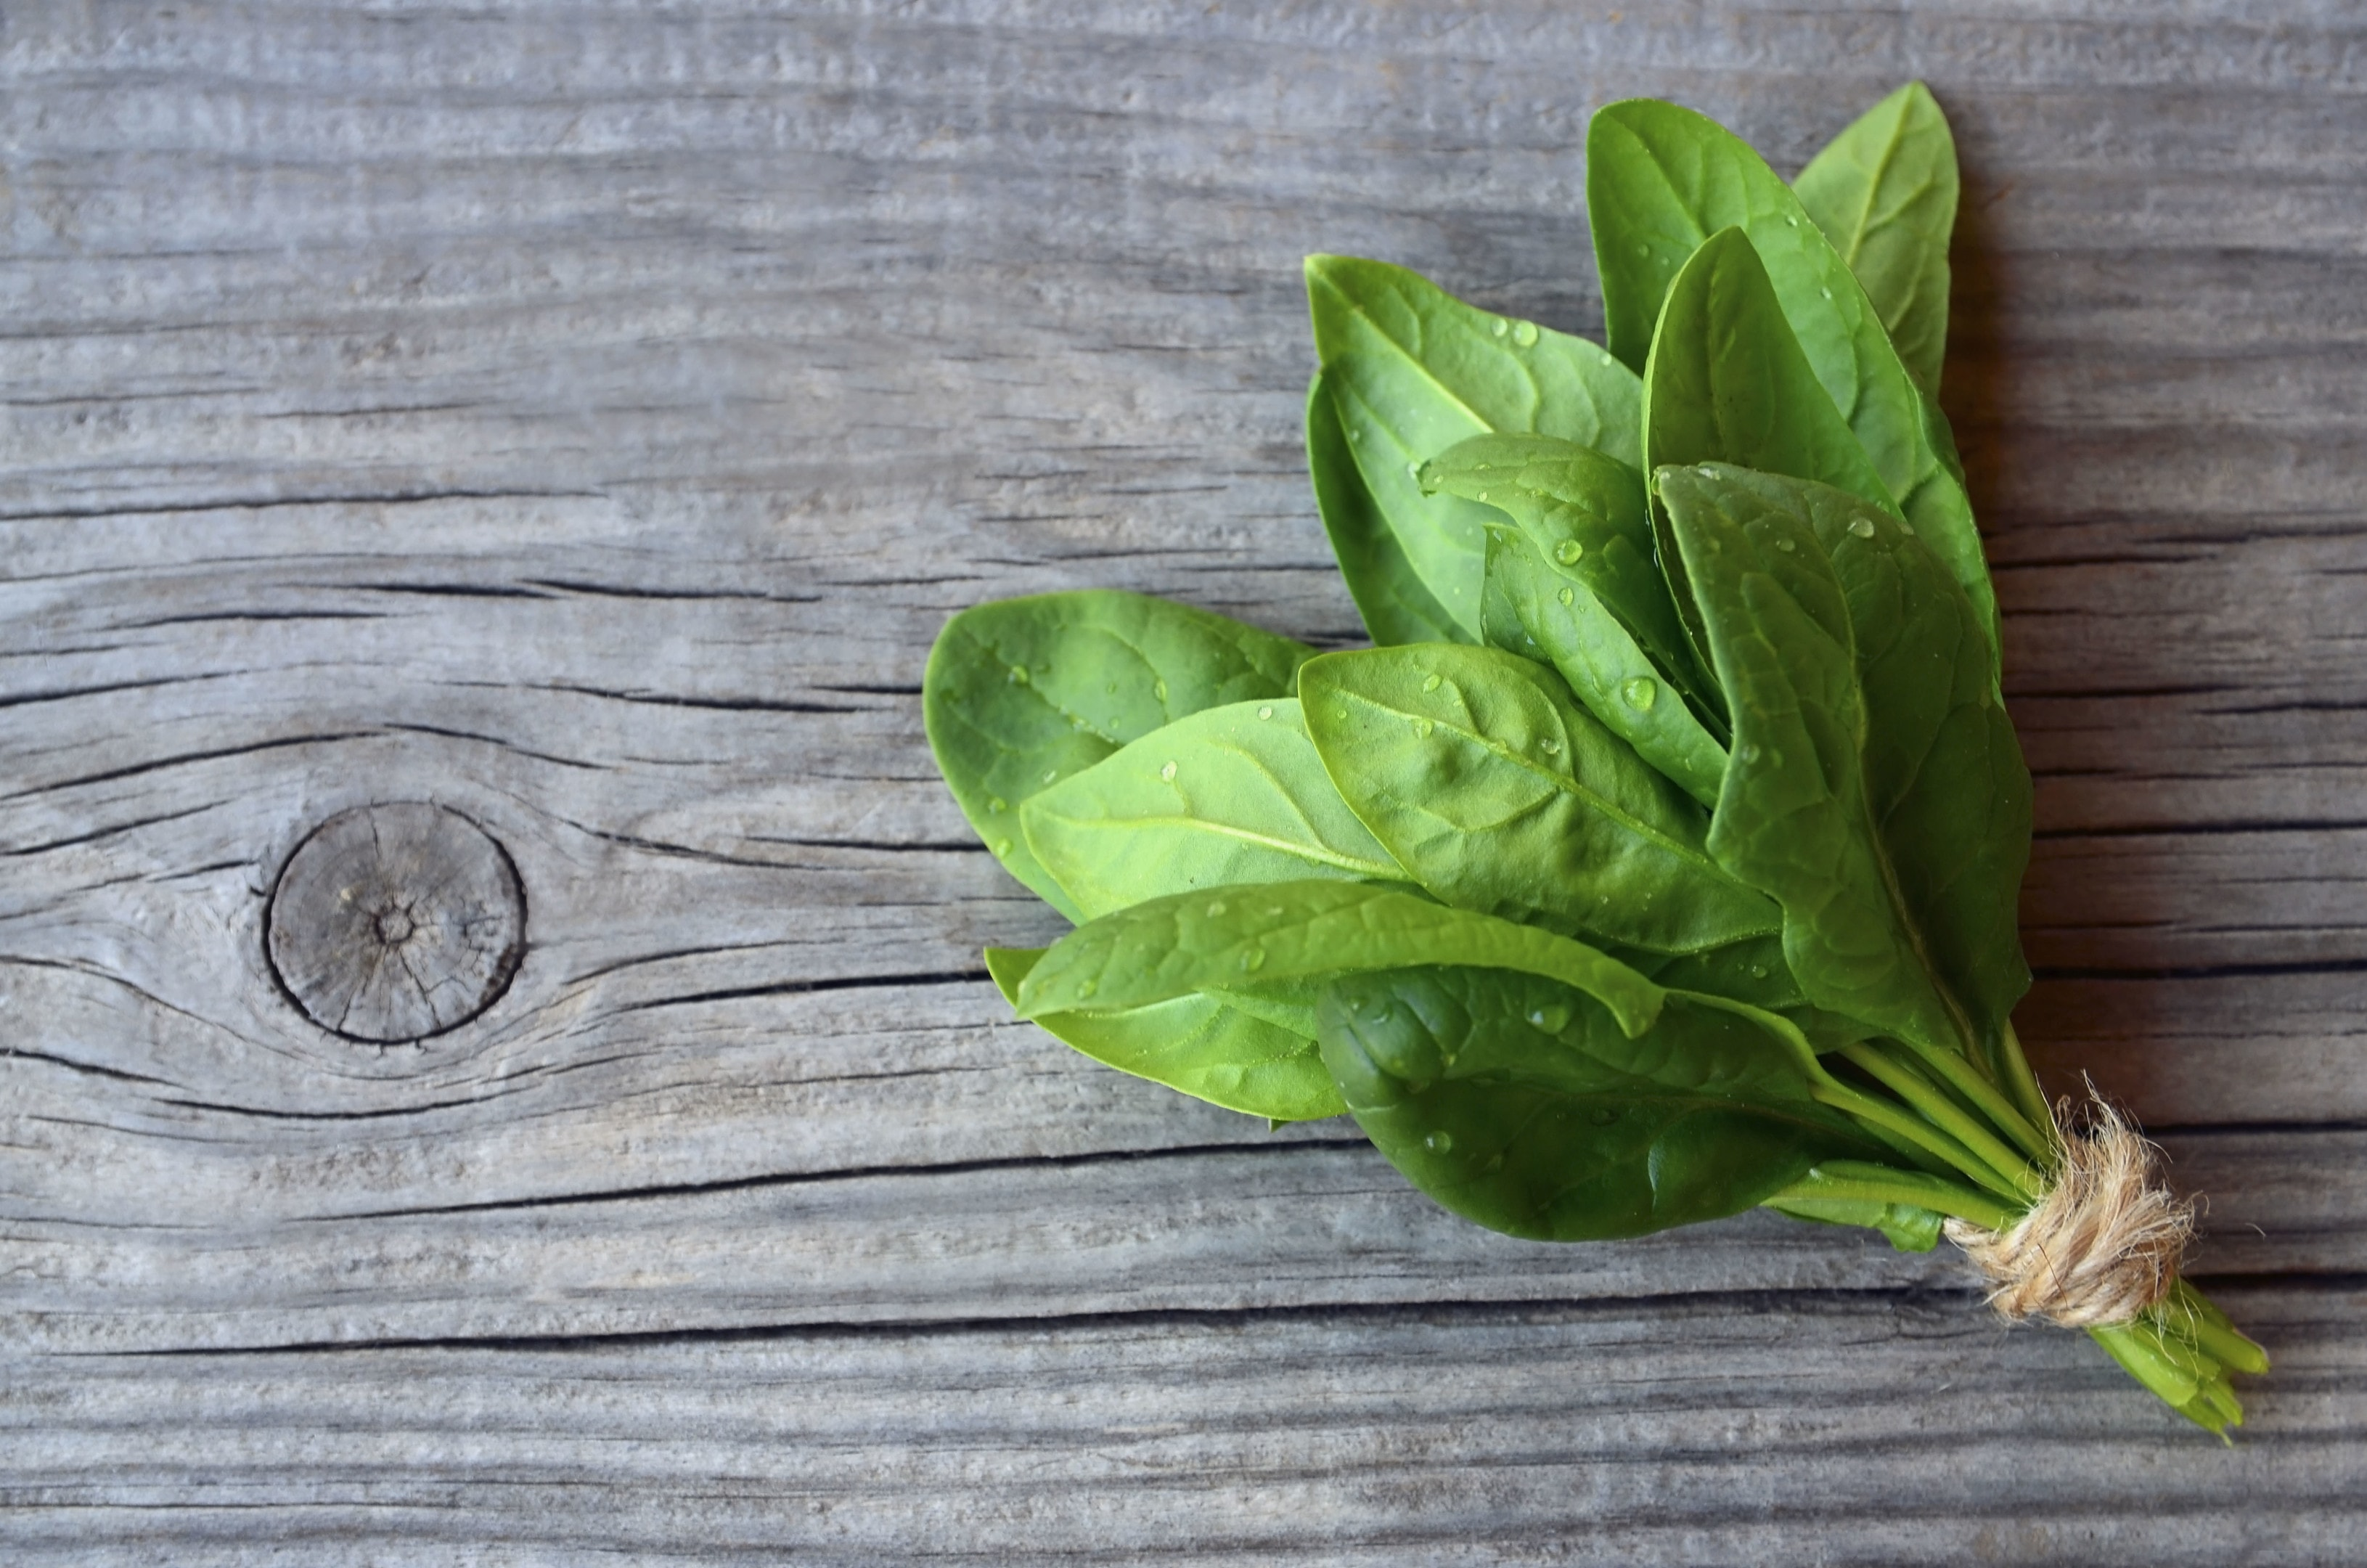 Fresh green organic spinach bundle leaves old wooden table